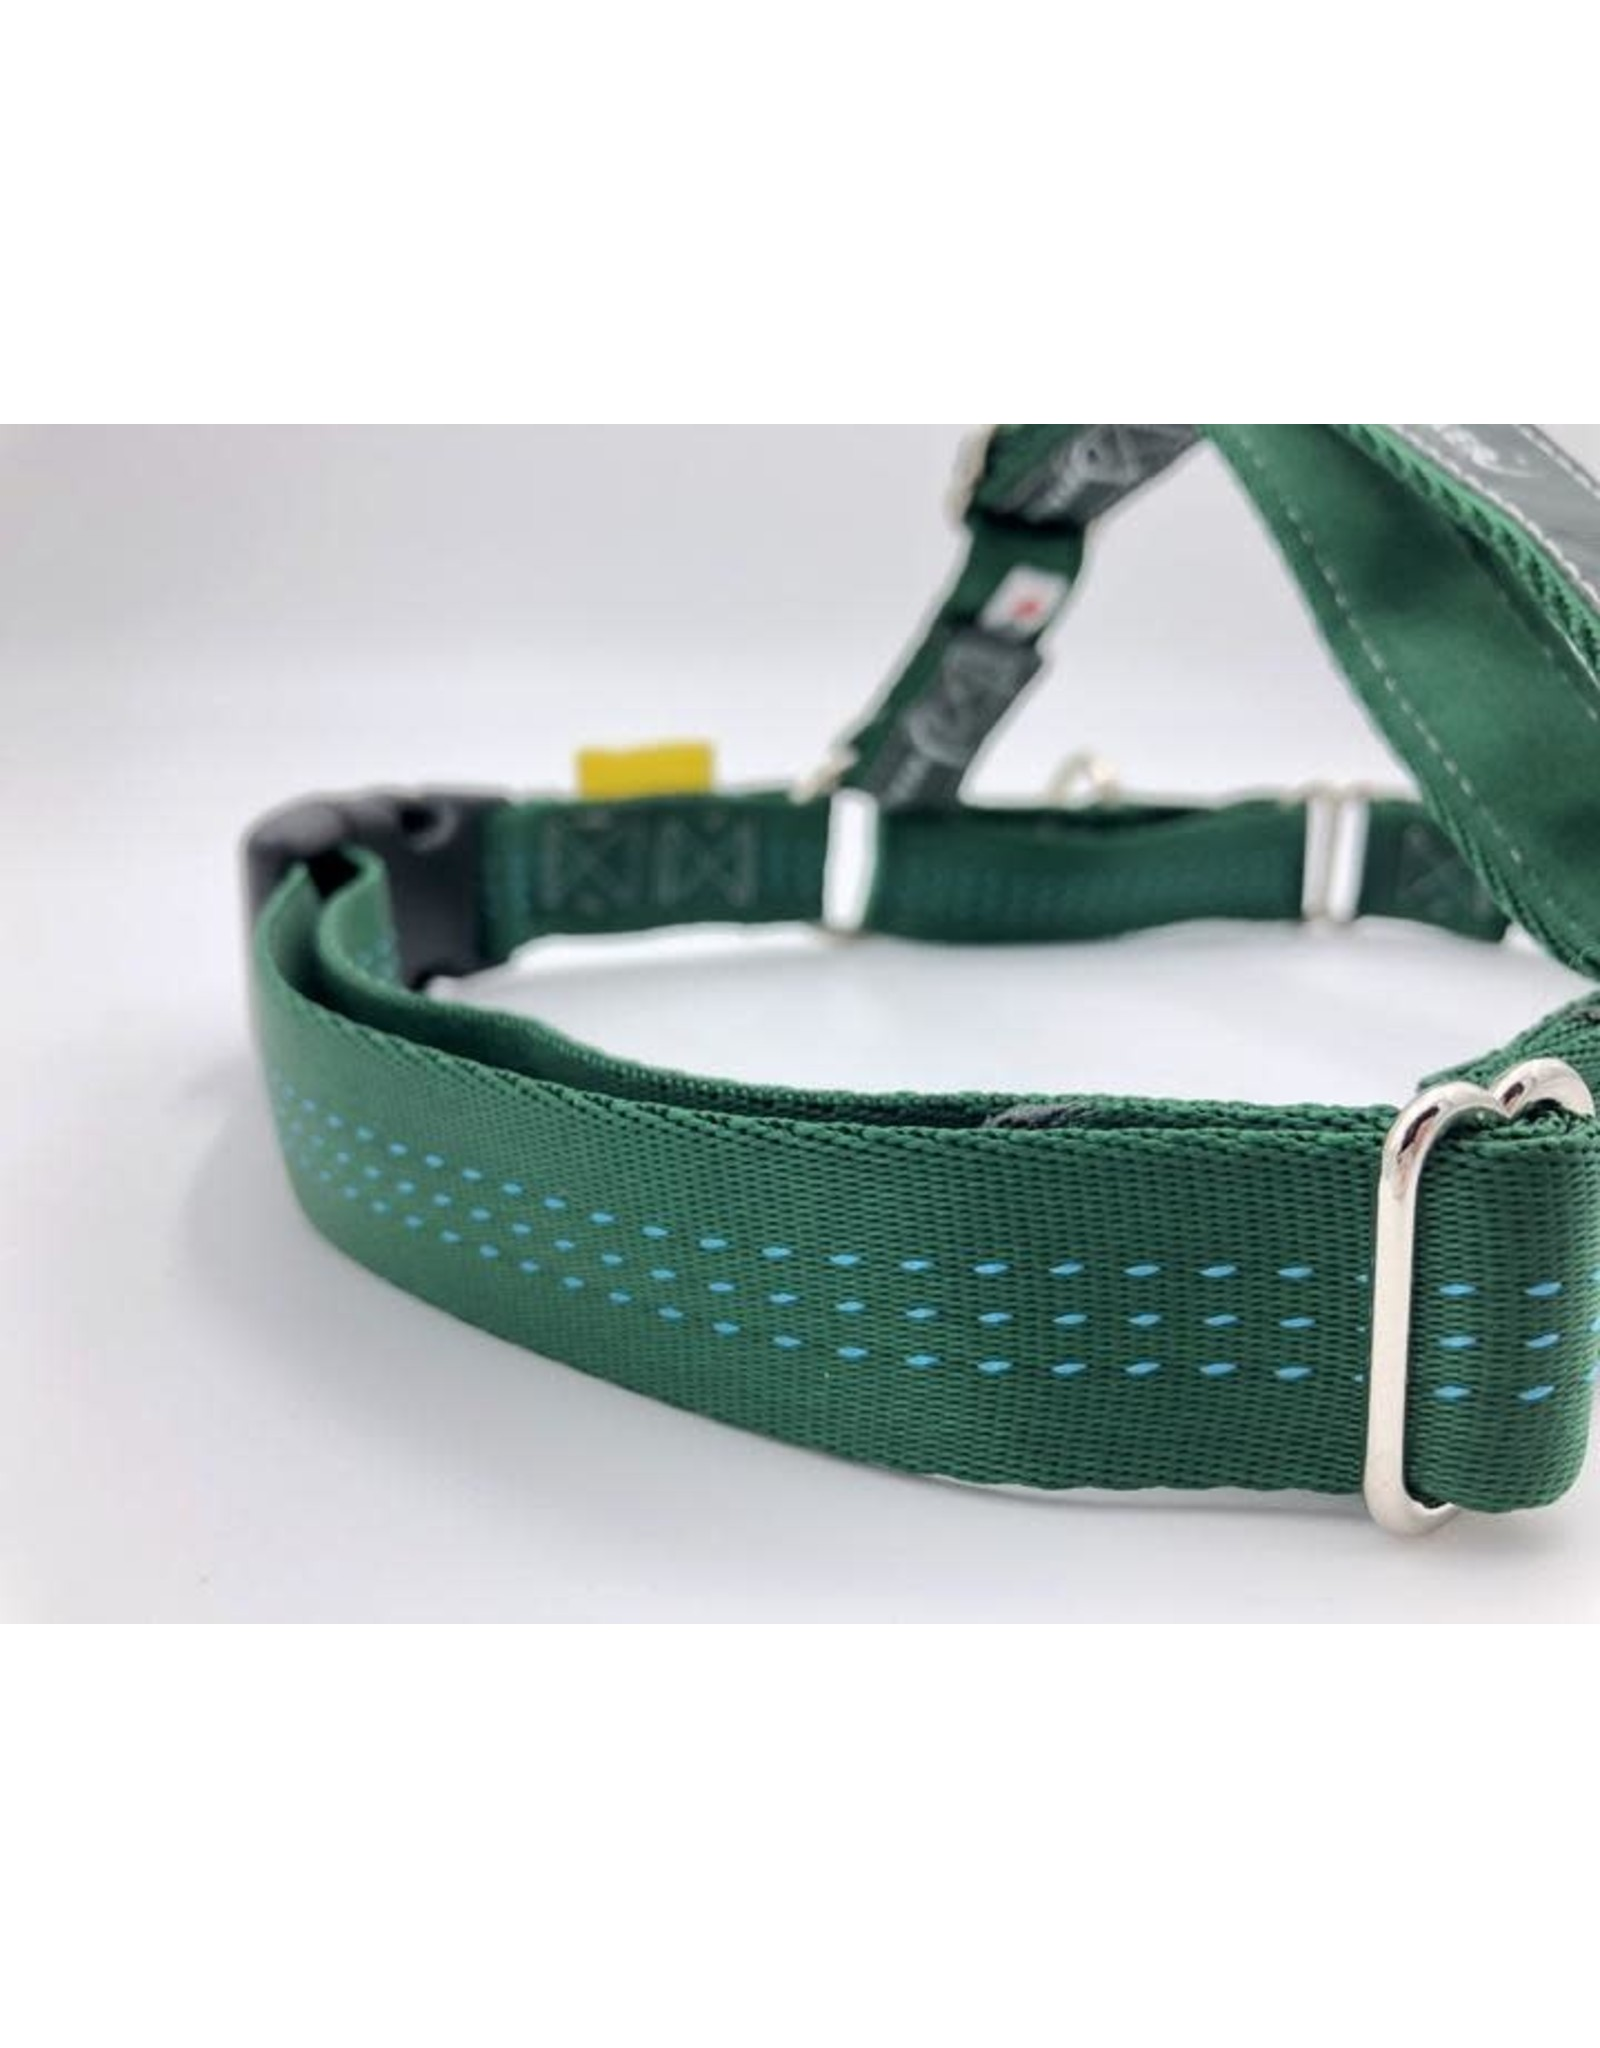 JWalker JWalker Harness - Green - M/L